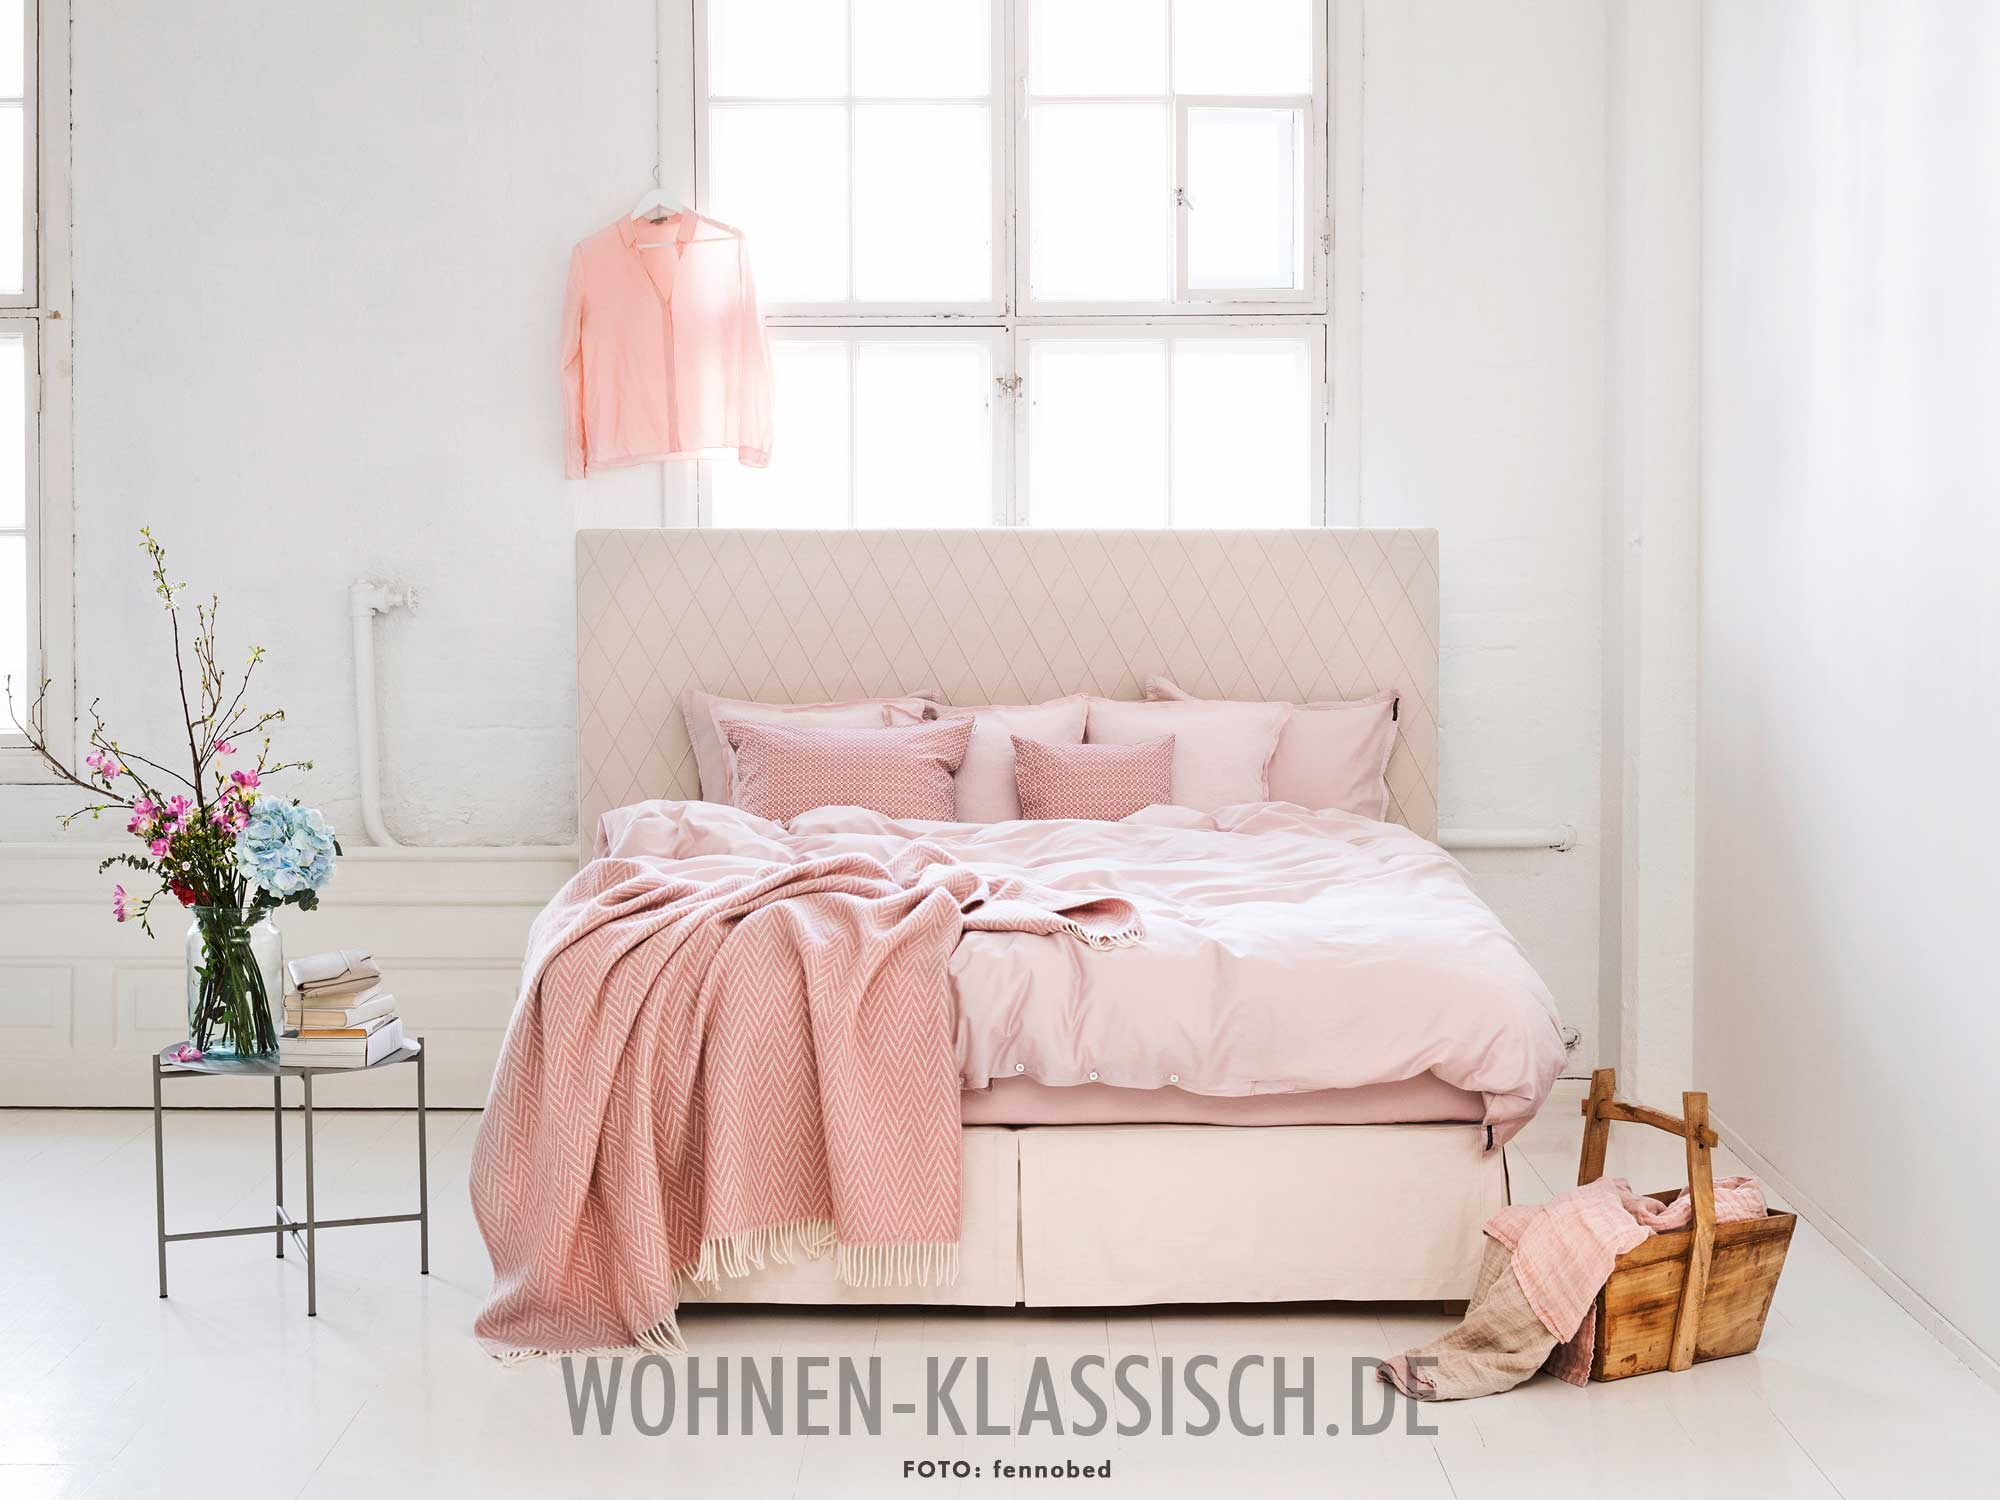 zierliche wirkung klassisch wohnen. Black Bedroom Furniture Sets. Home Design Ideas